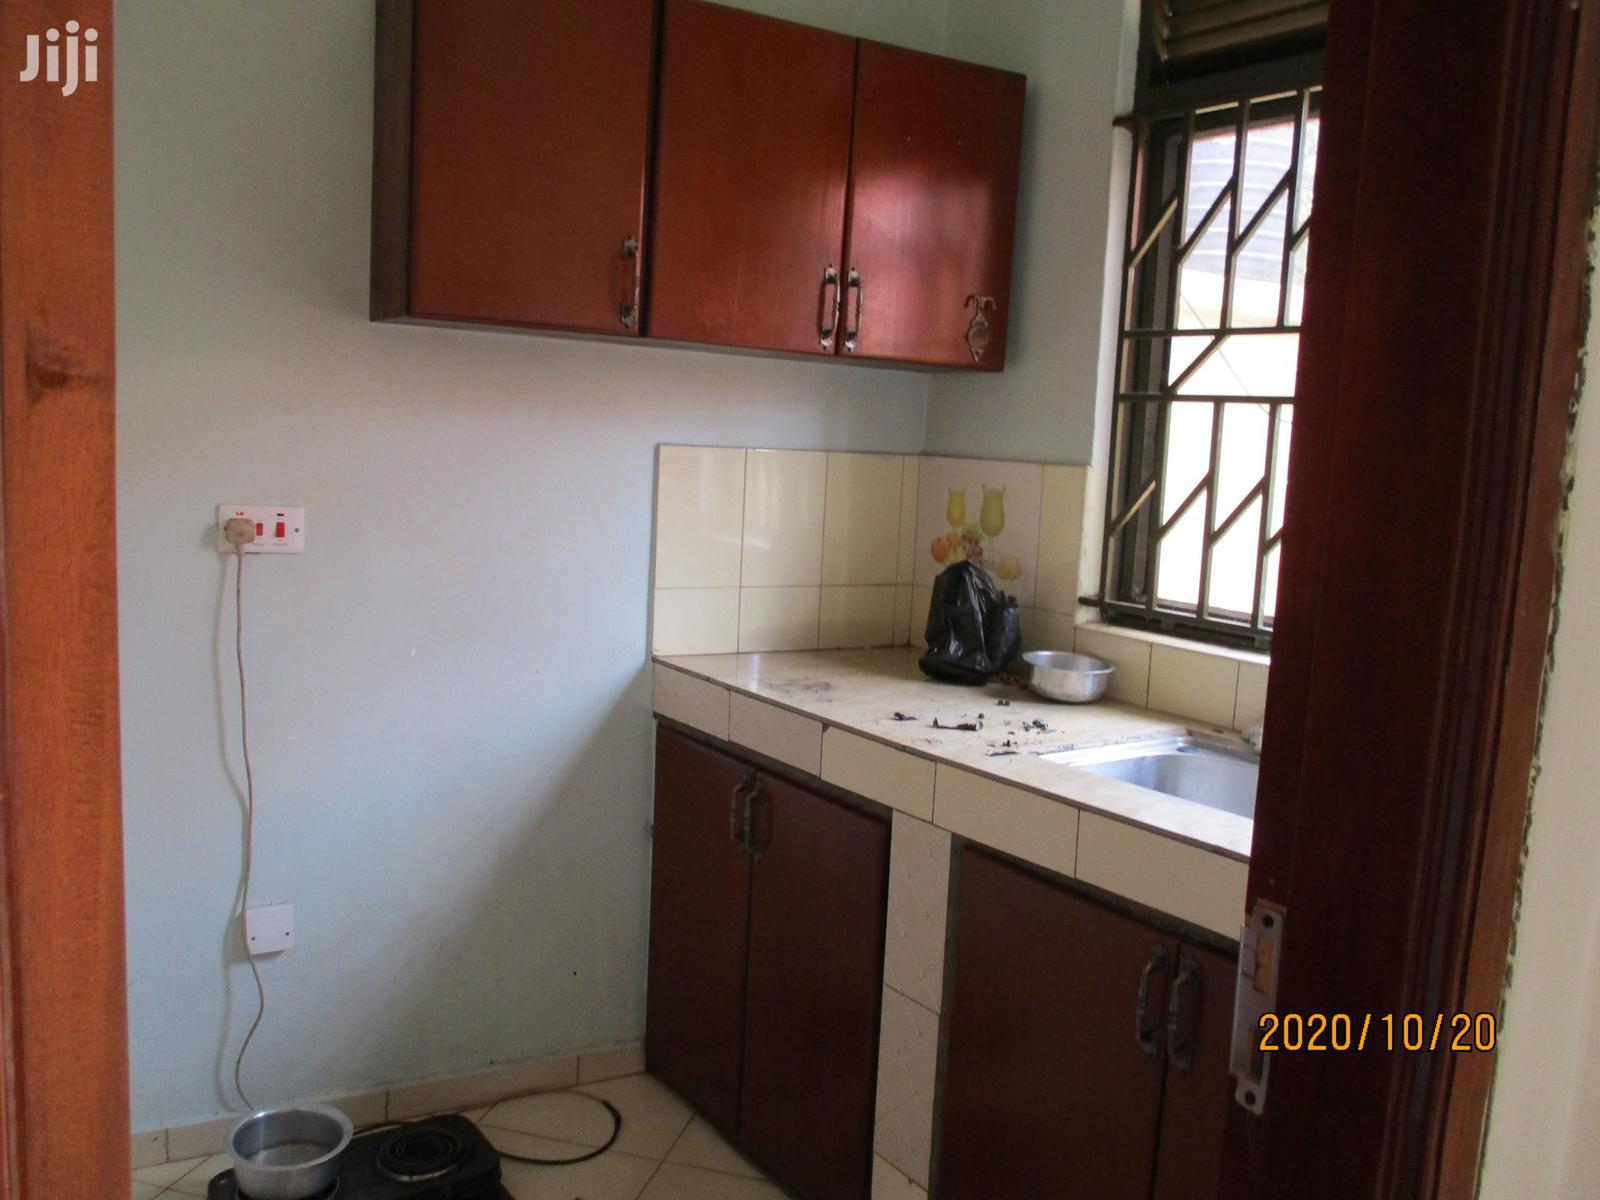 2 Bedroom House For Rent In Kyaliwajjala   Houses & Apartments For Rent for sale in Kampala, Central Region, Uganda